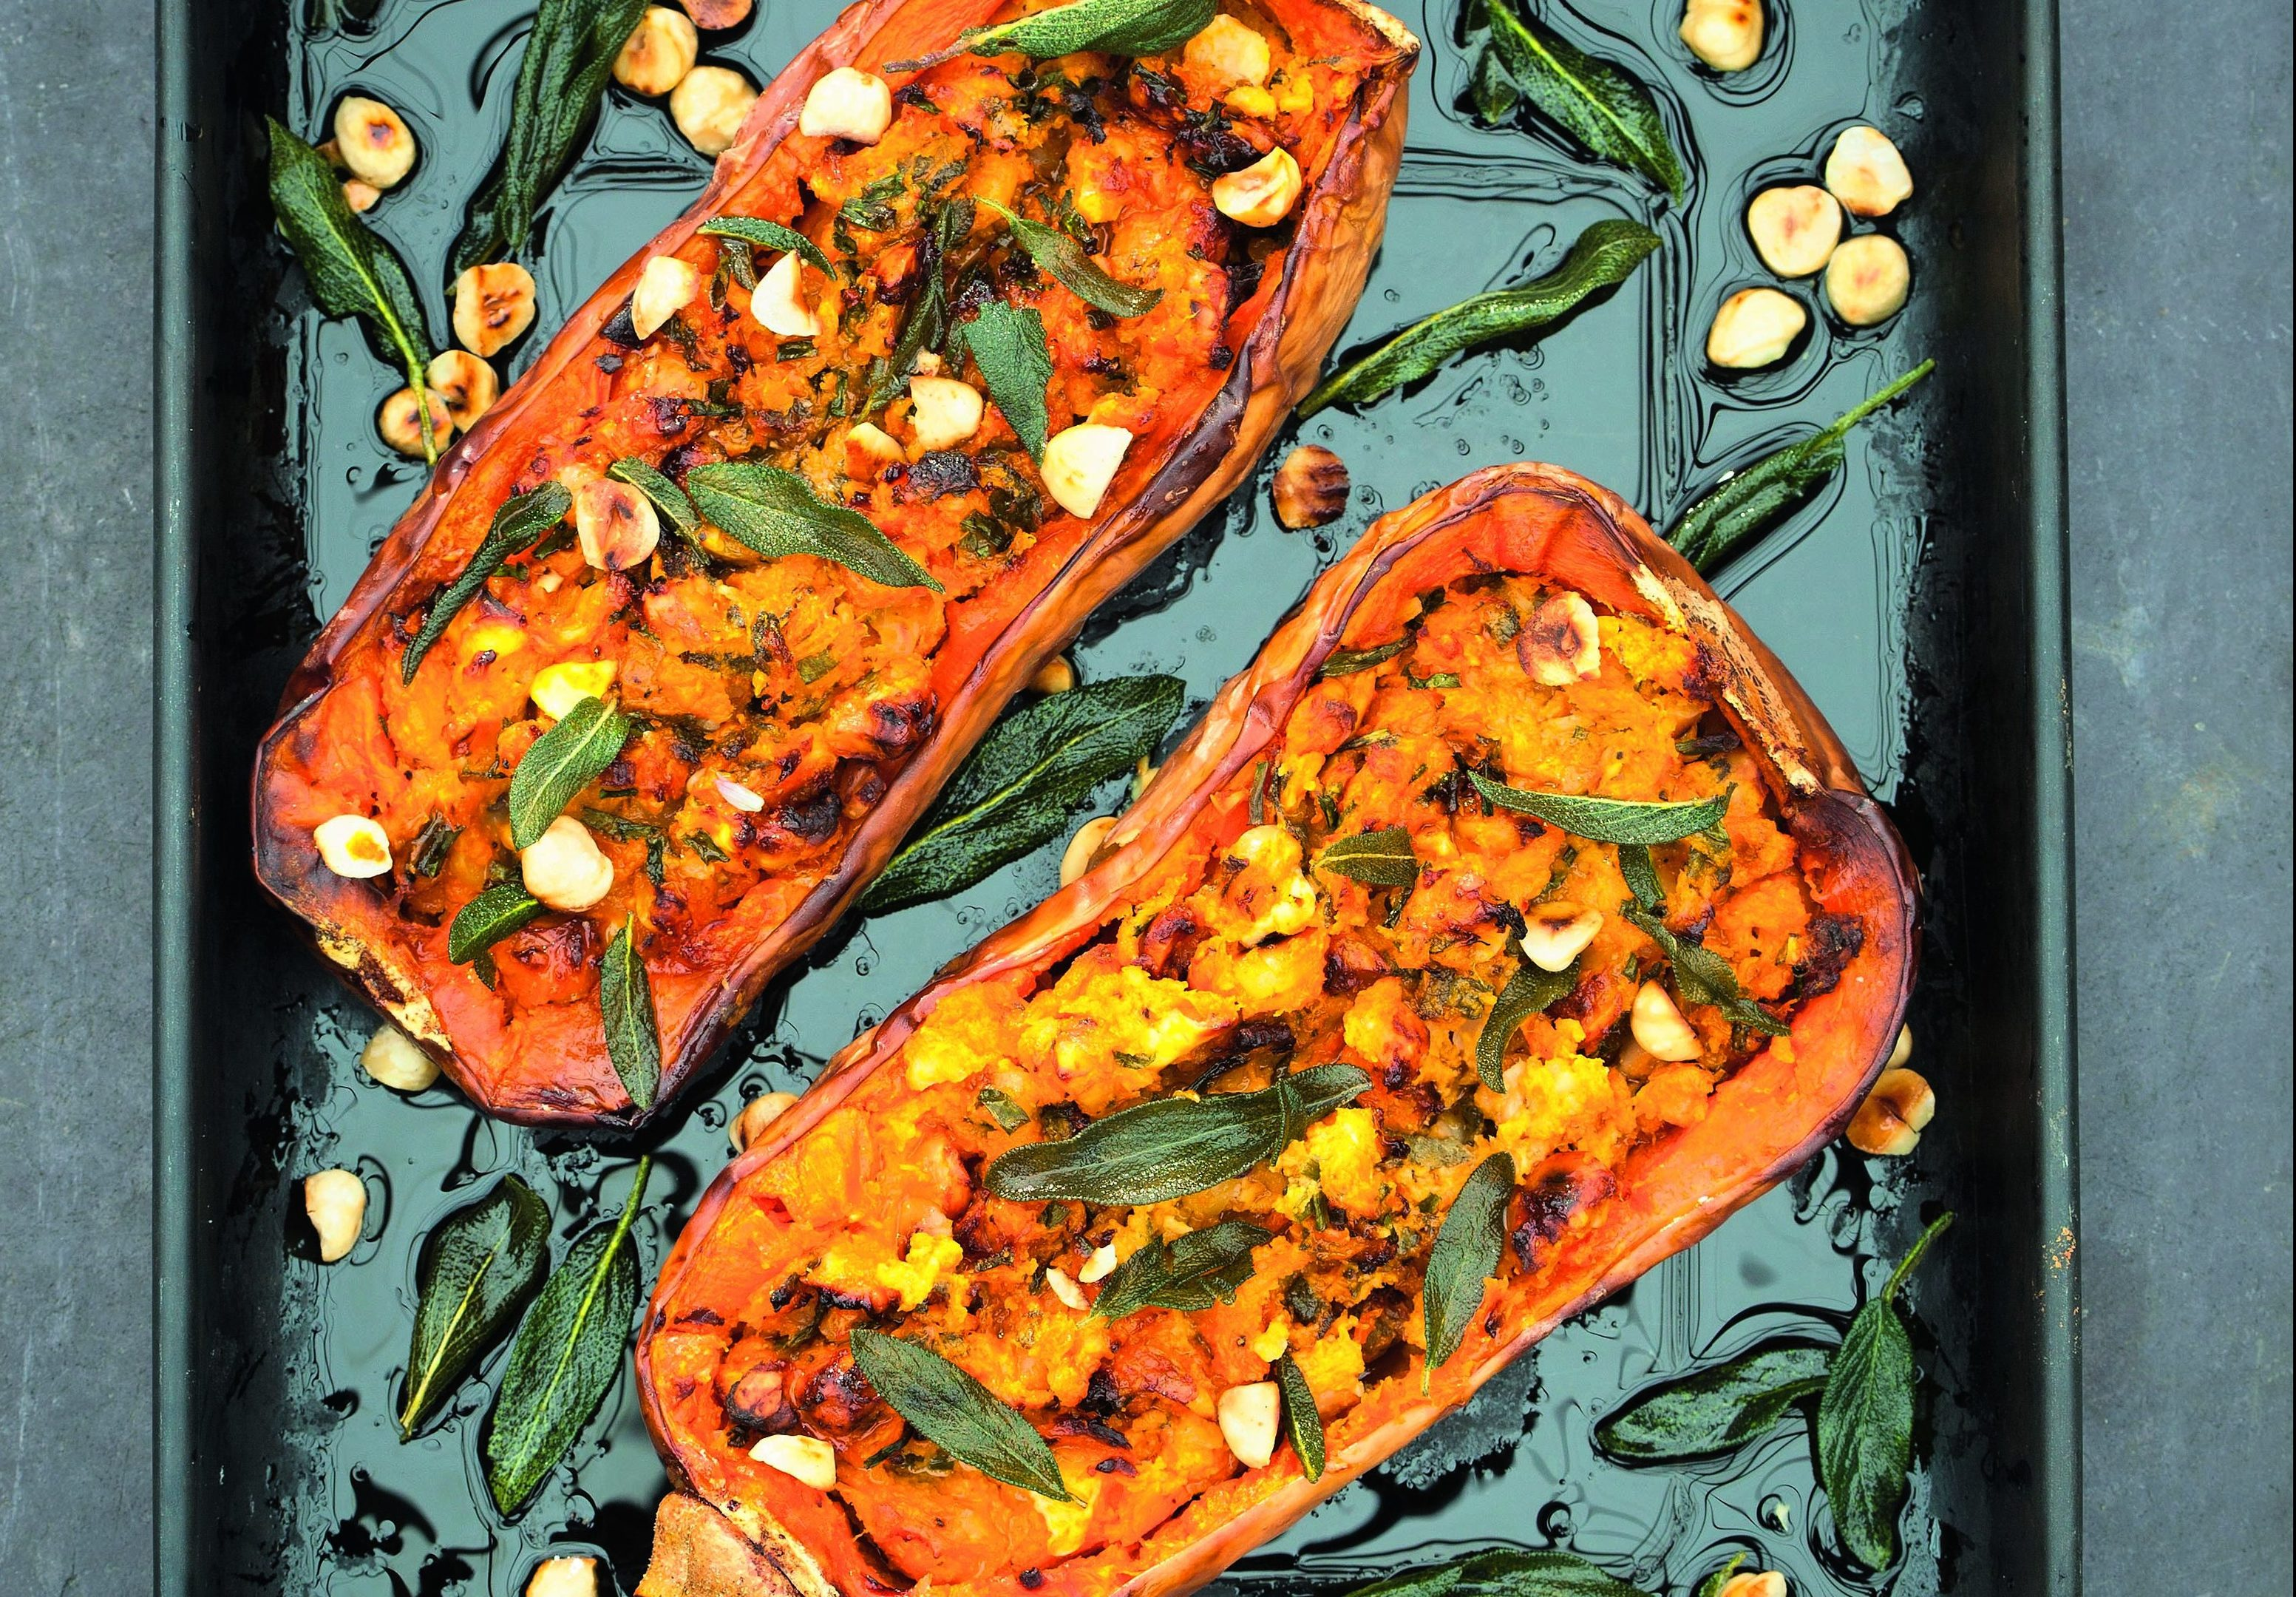 Stuffed butternut squash ( Sarah Raven's Good Good Food: Recipes to Help You Look, Feel and Live Well)